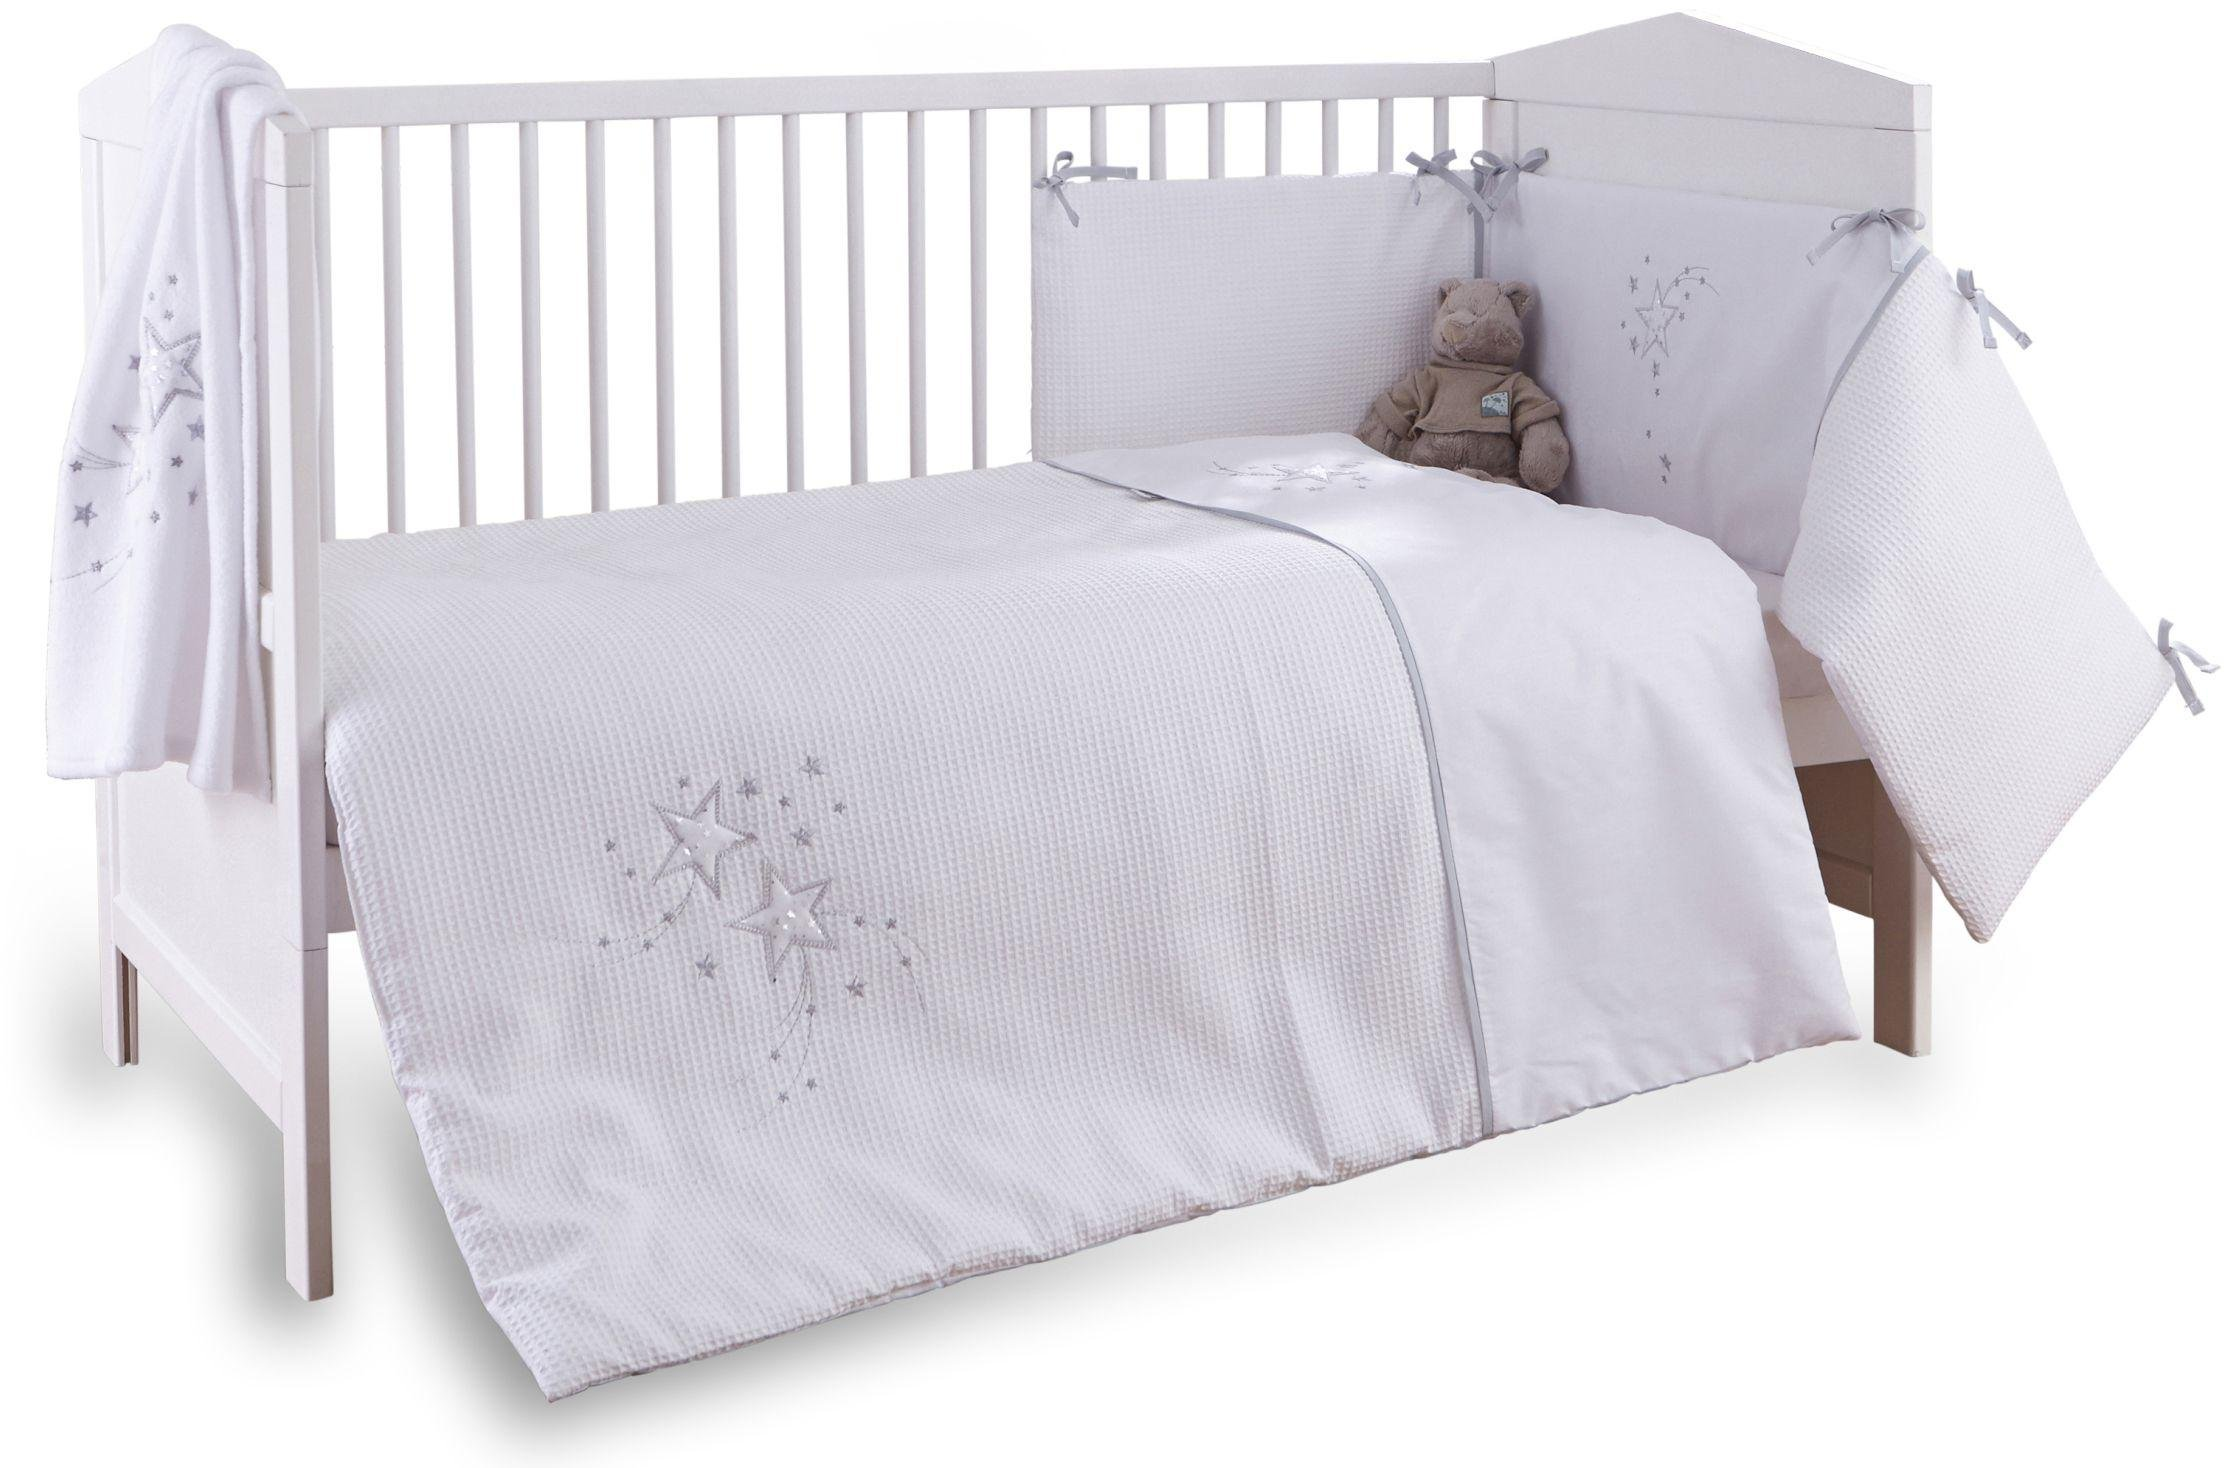 clair-de-lune-stardust-3-piece-cotcot-bed-set-white-trim